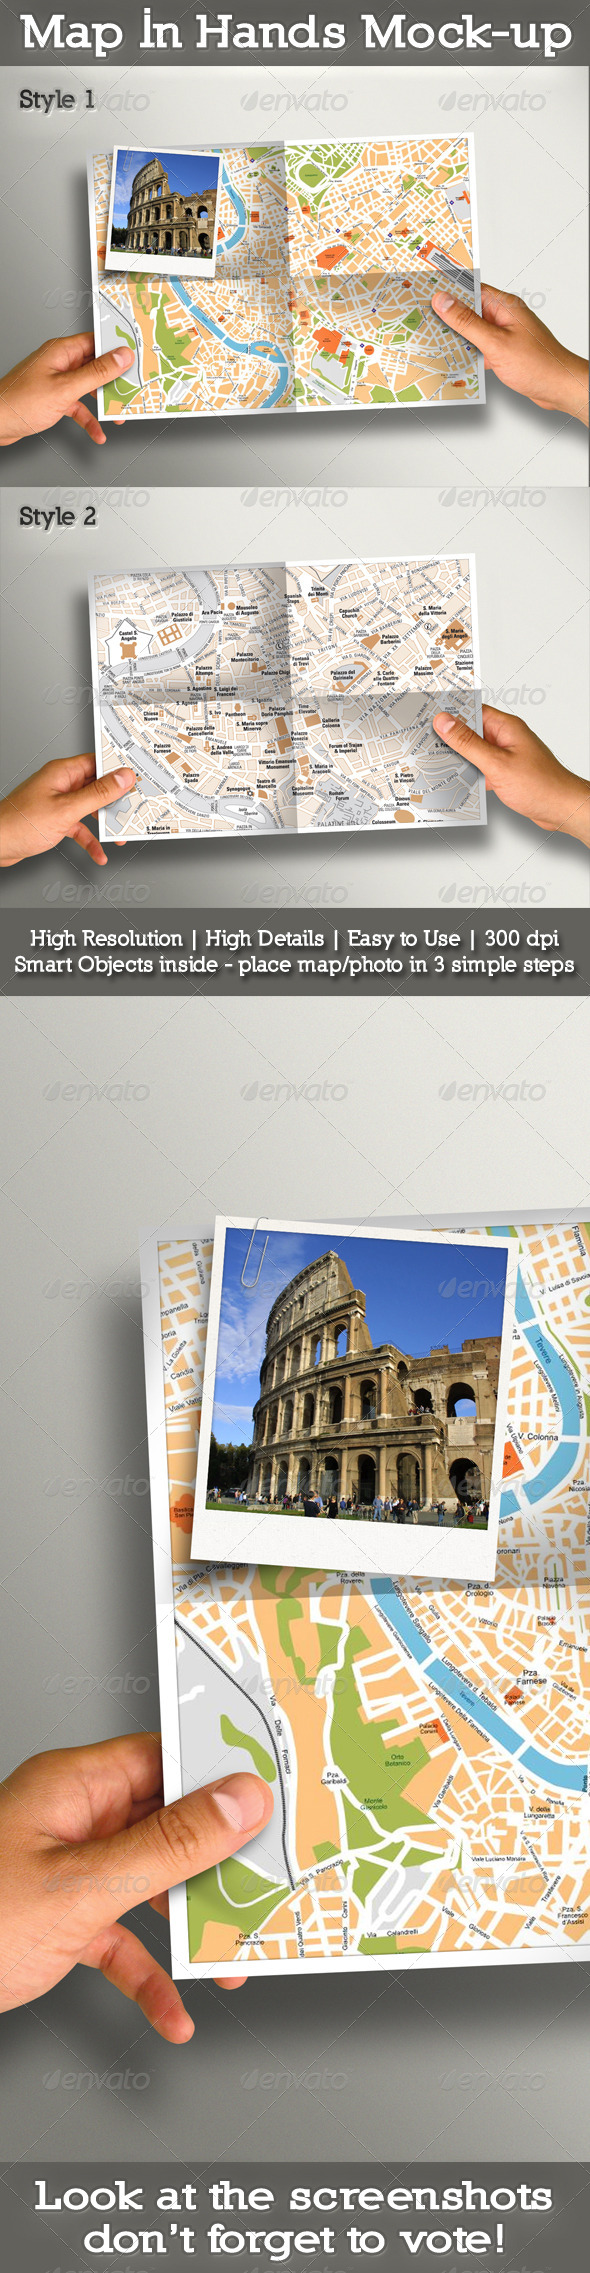 Map In Hands Mock-up - Miscellaneous Photo Templates